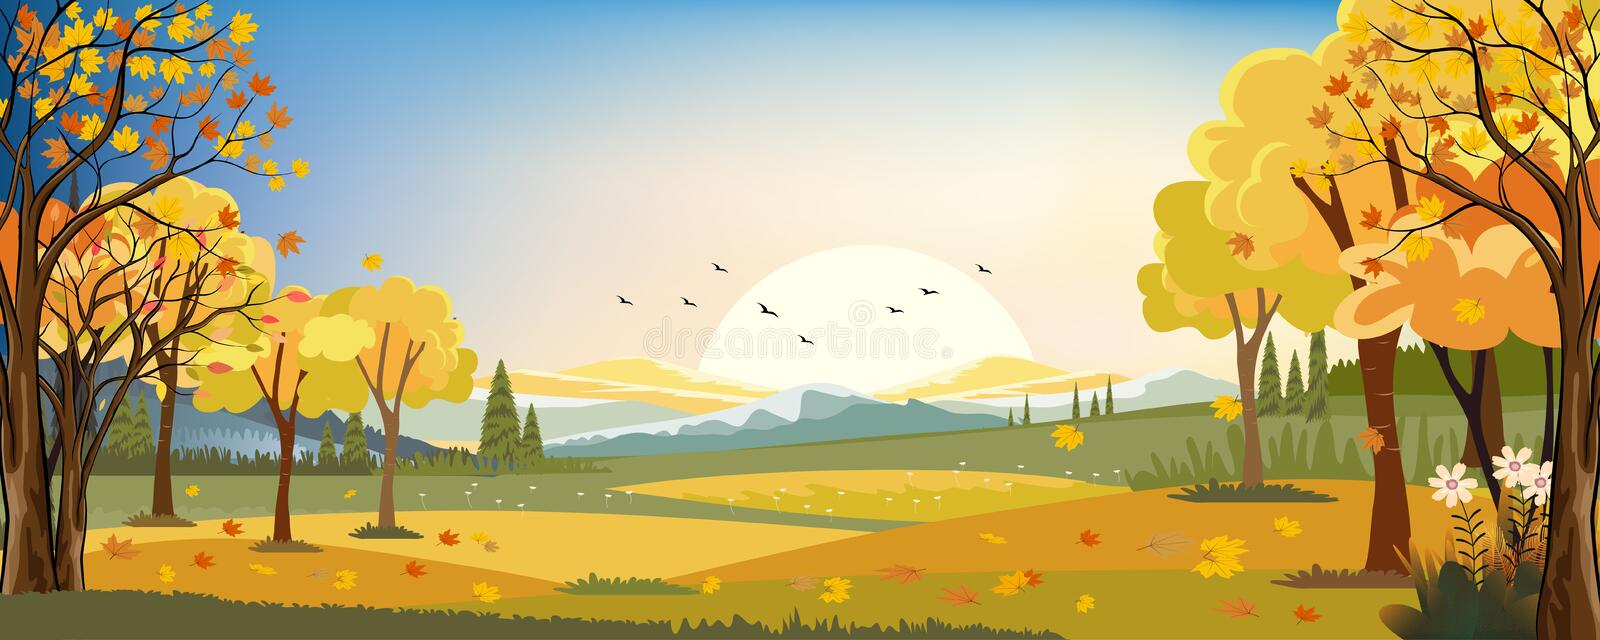 Panorama landscapes of Autumn farm field with maple leaves falling from trees, Fall season in evening stock illustration